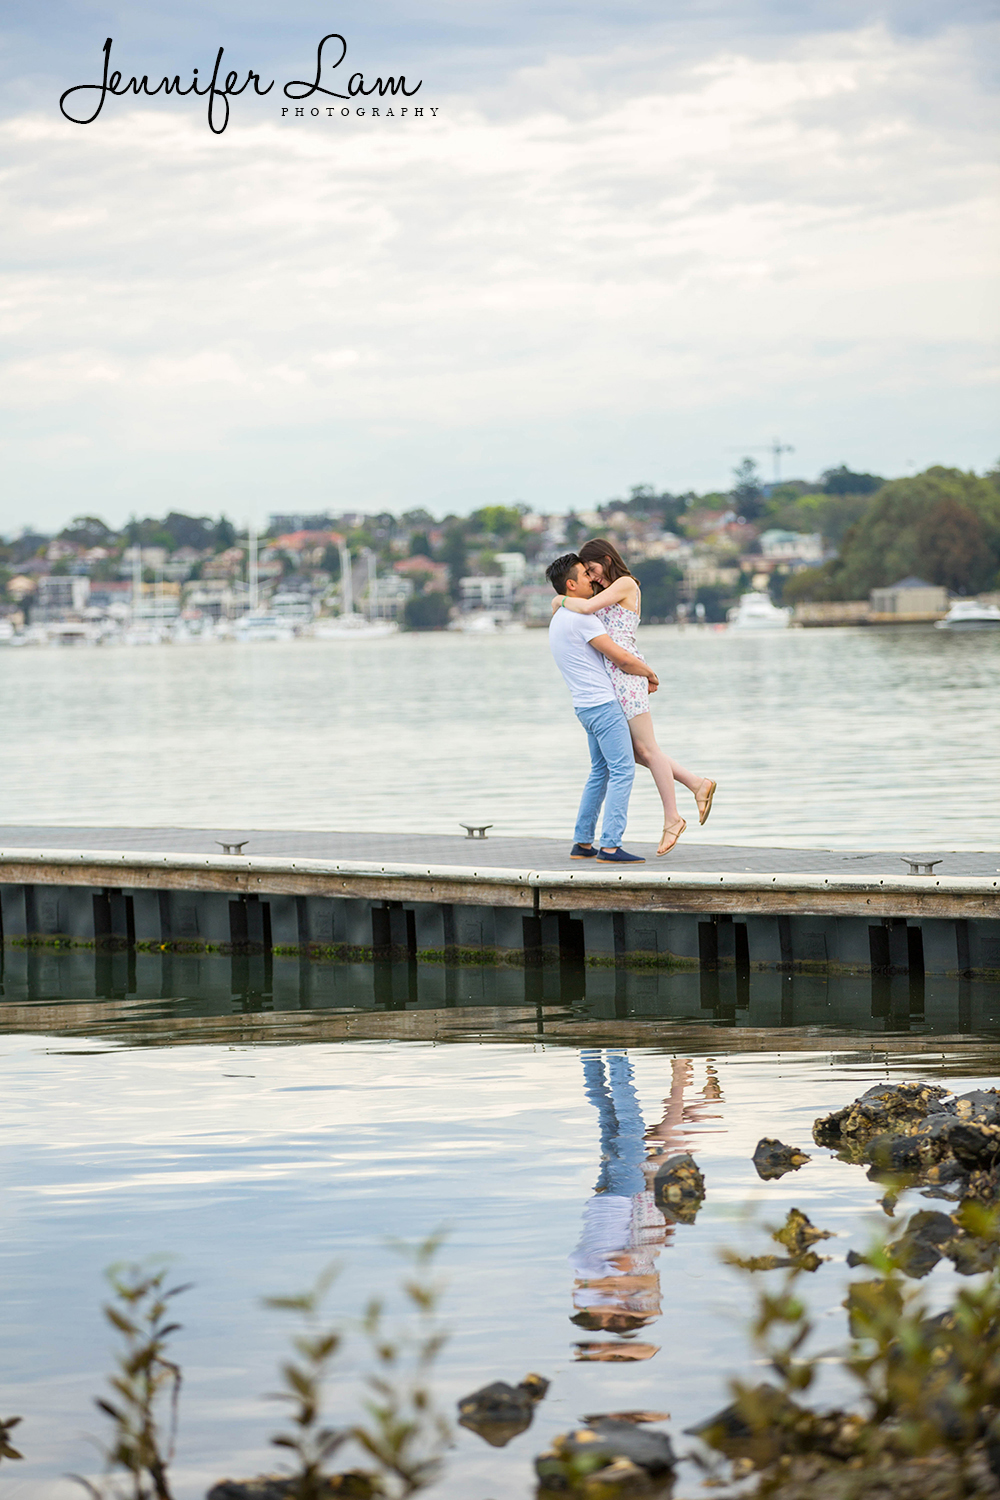 Sydney Pre-Wedding Photography - Jennifer Lam Photography (13).jpg